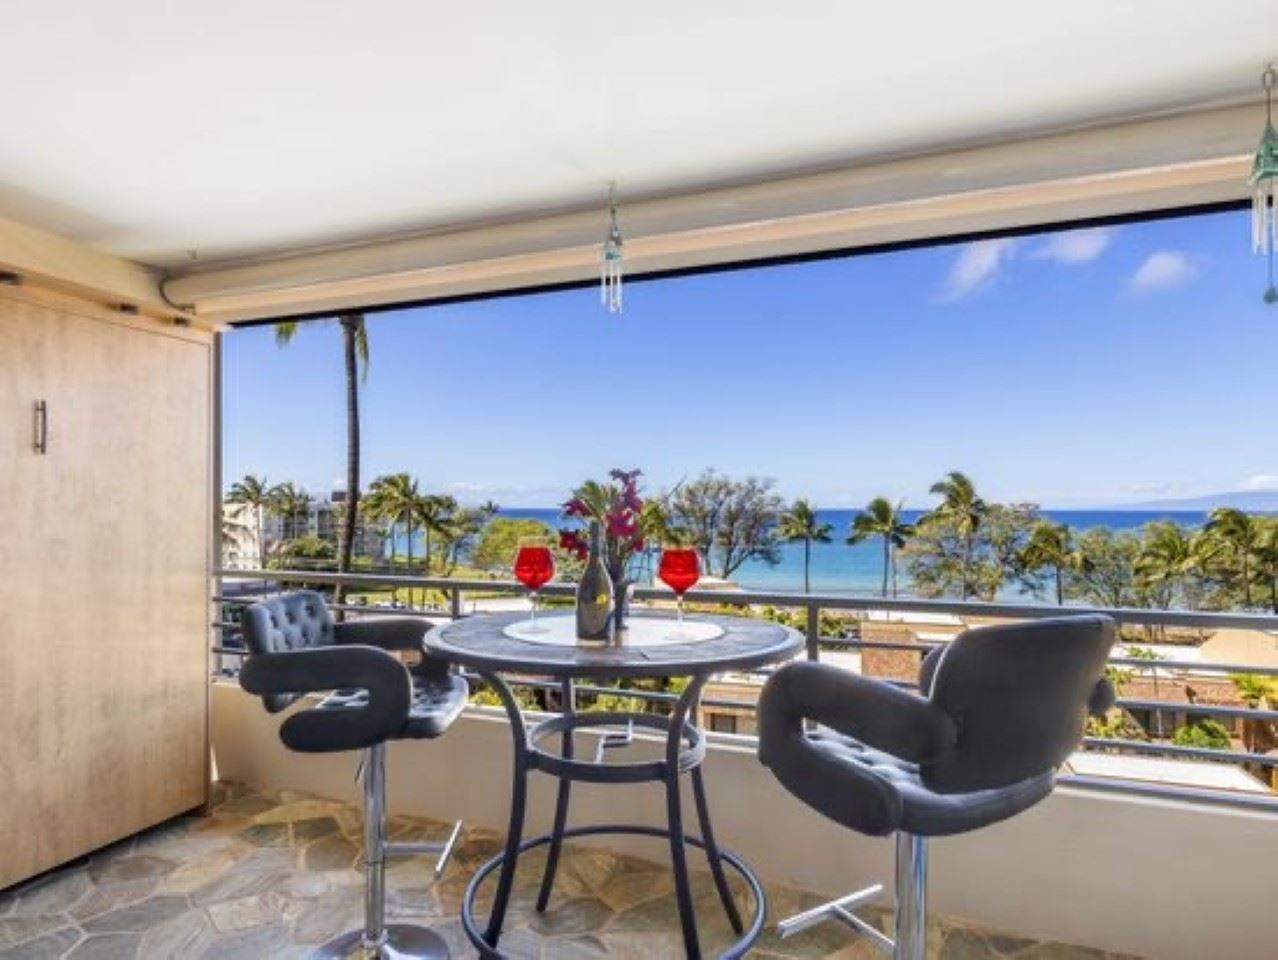 Photo of 2385 S Kihei Rd #507, Kihei, HI 96753 (MLS # 391026)